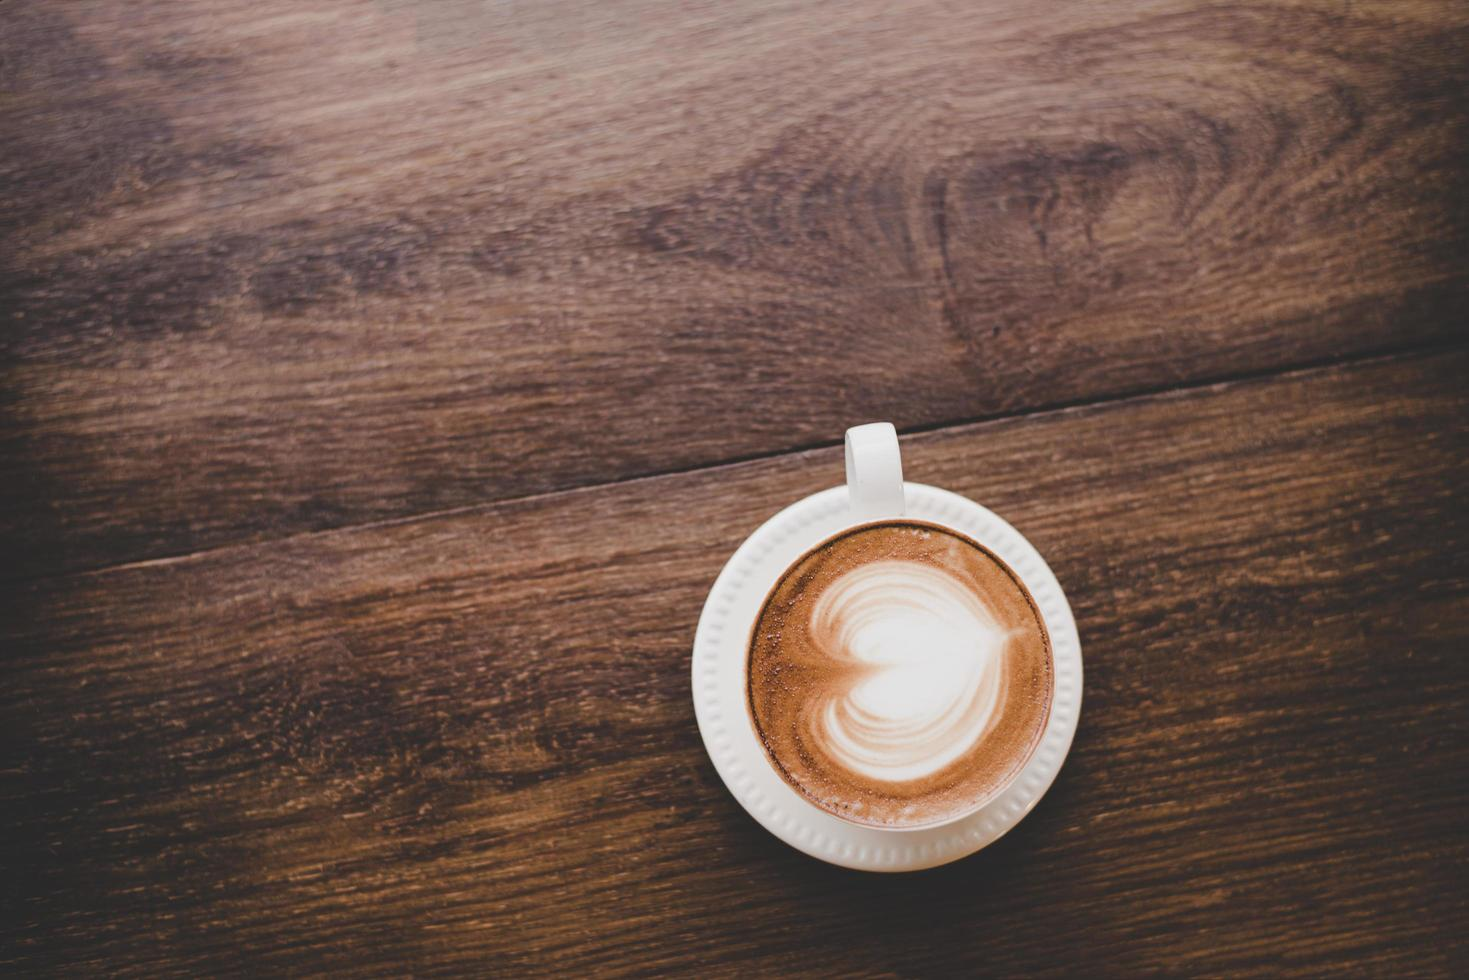 Top view of vintage latte art coffee with heart shape on wooden table photo